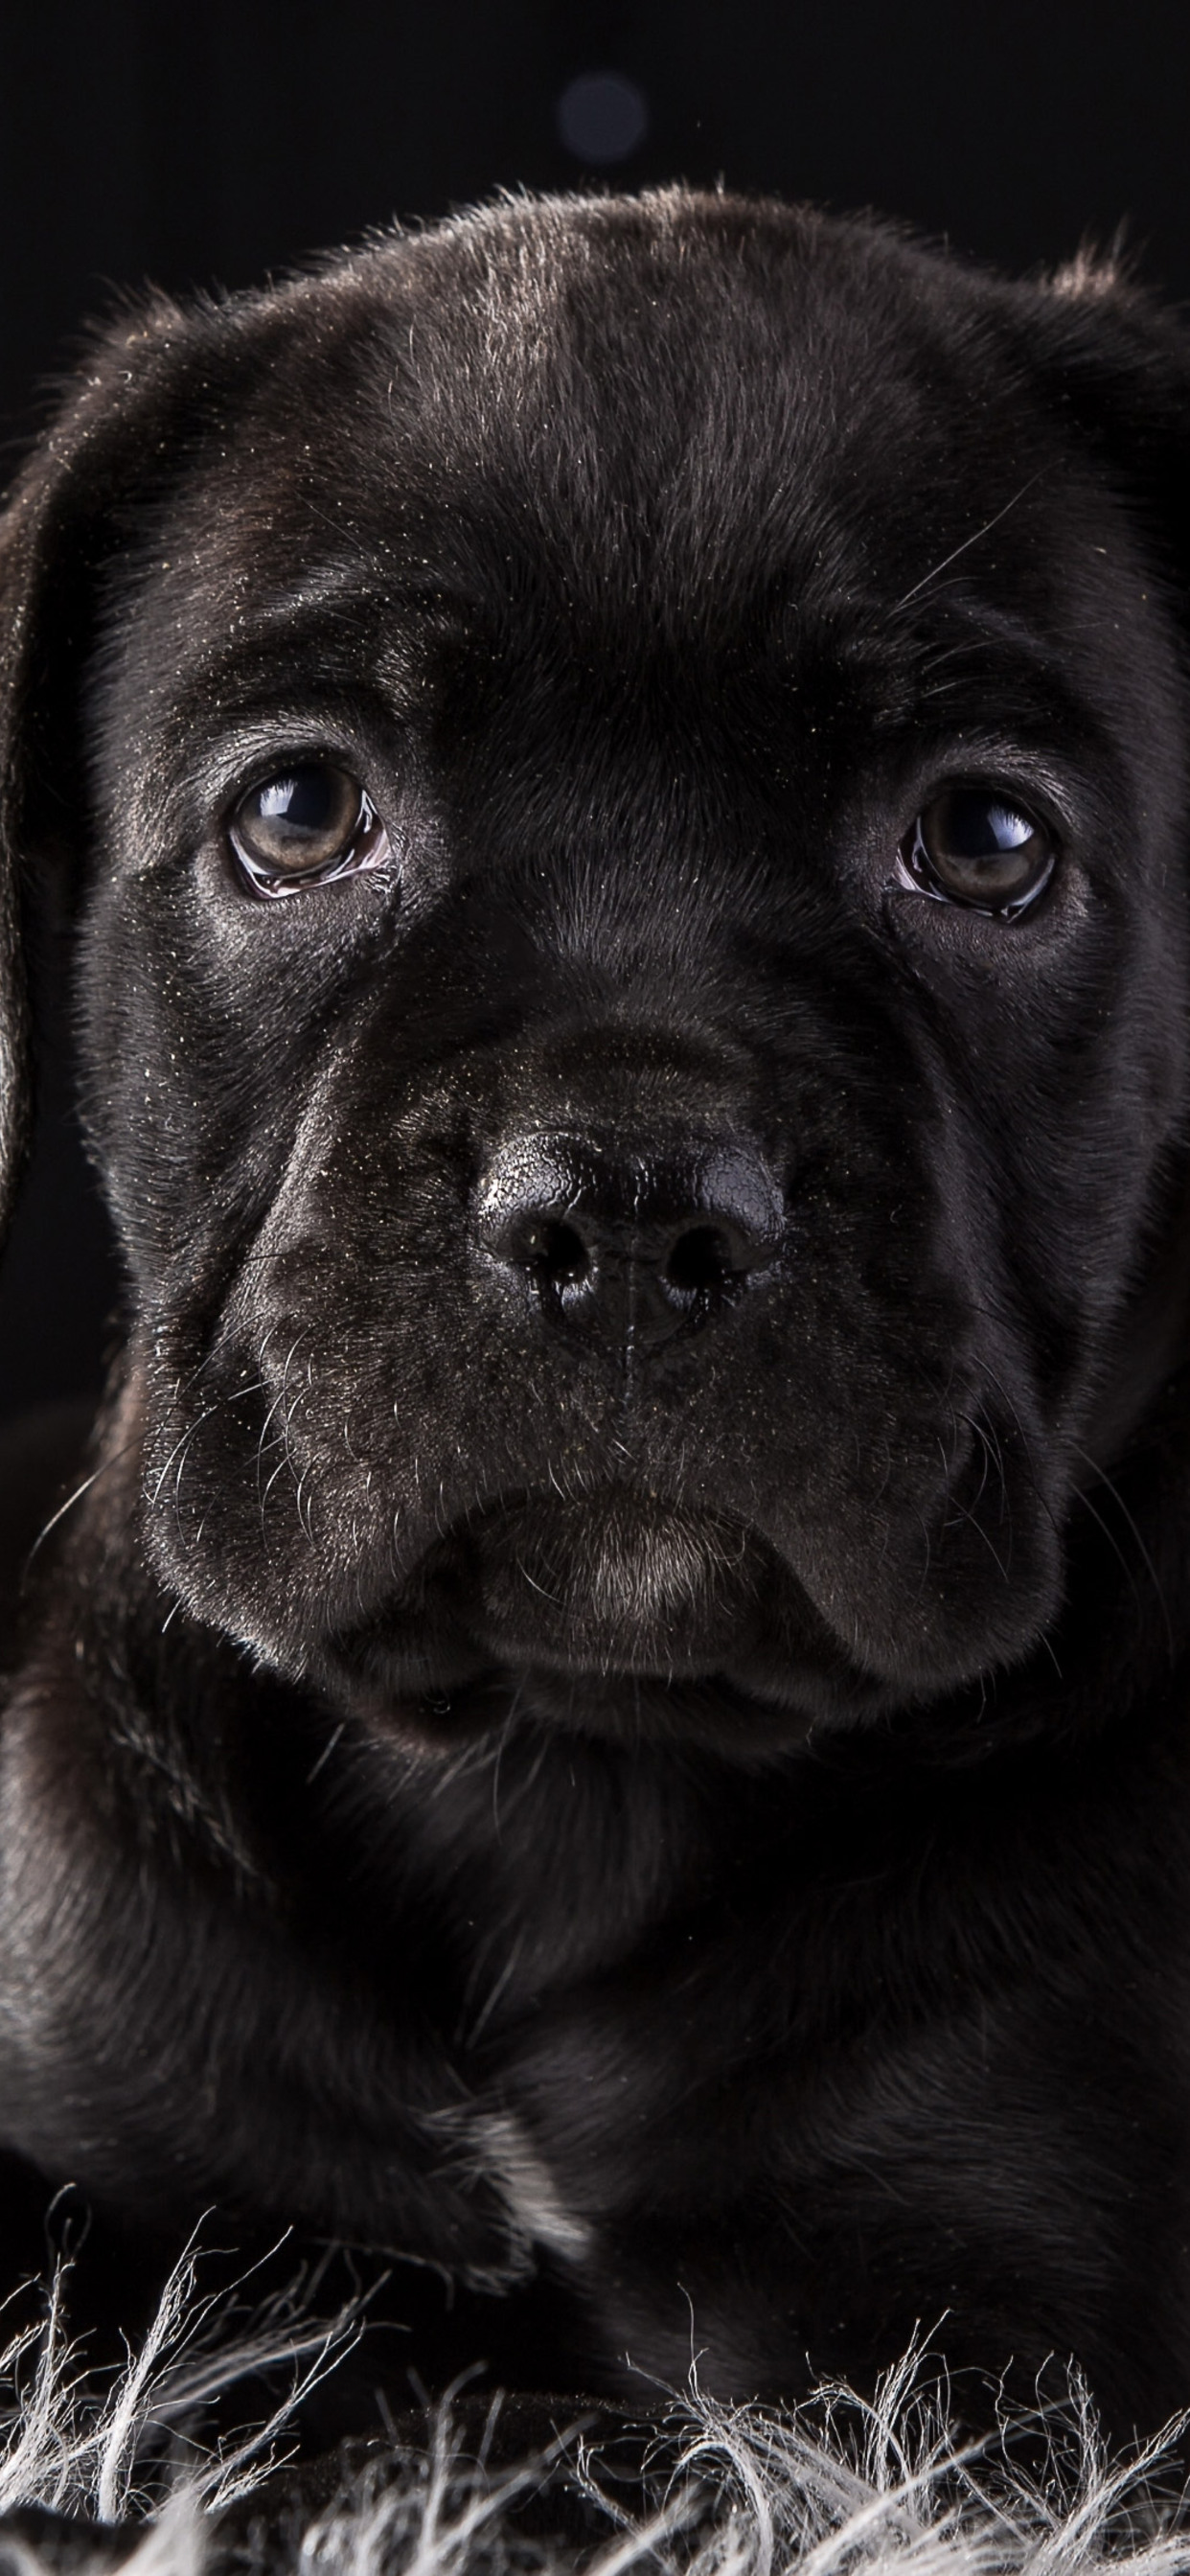 1242x2688 Cane Corso Dog Puppy 4k Hd Iphone Xs Max Hd 4k Wallpapers Images Backgrounds Photos And Pictures